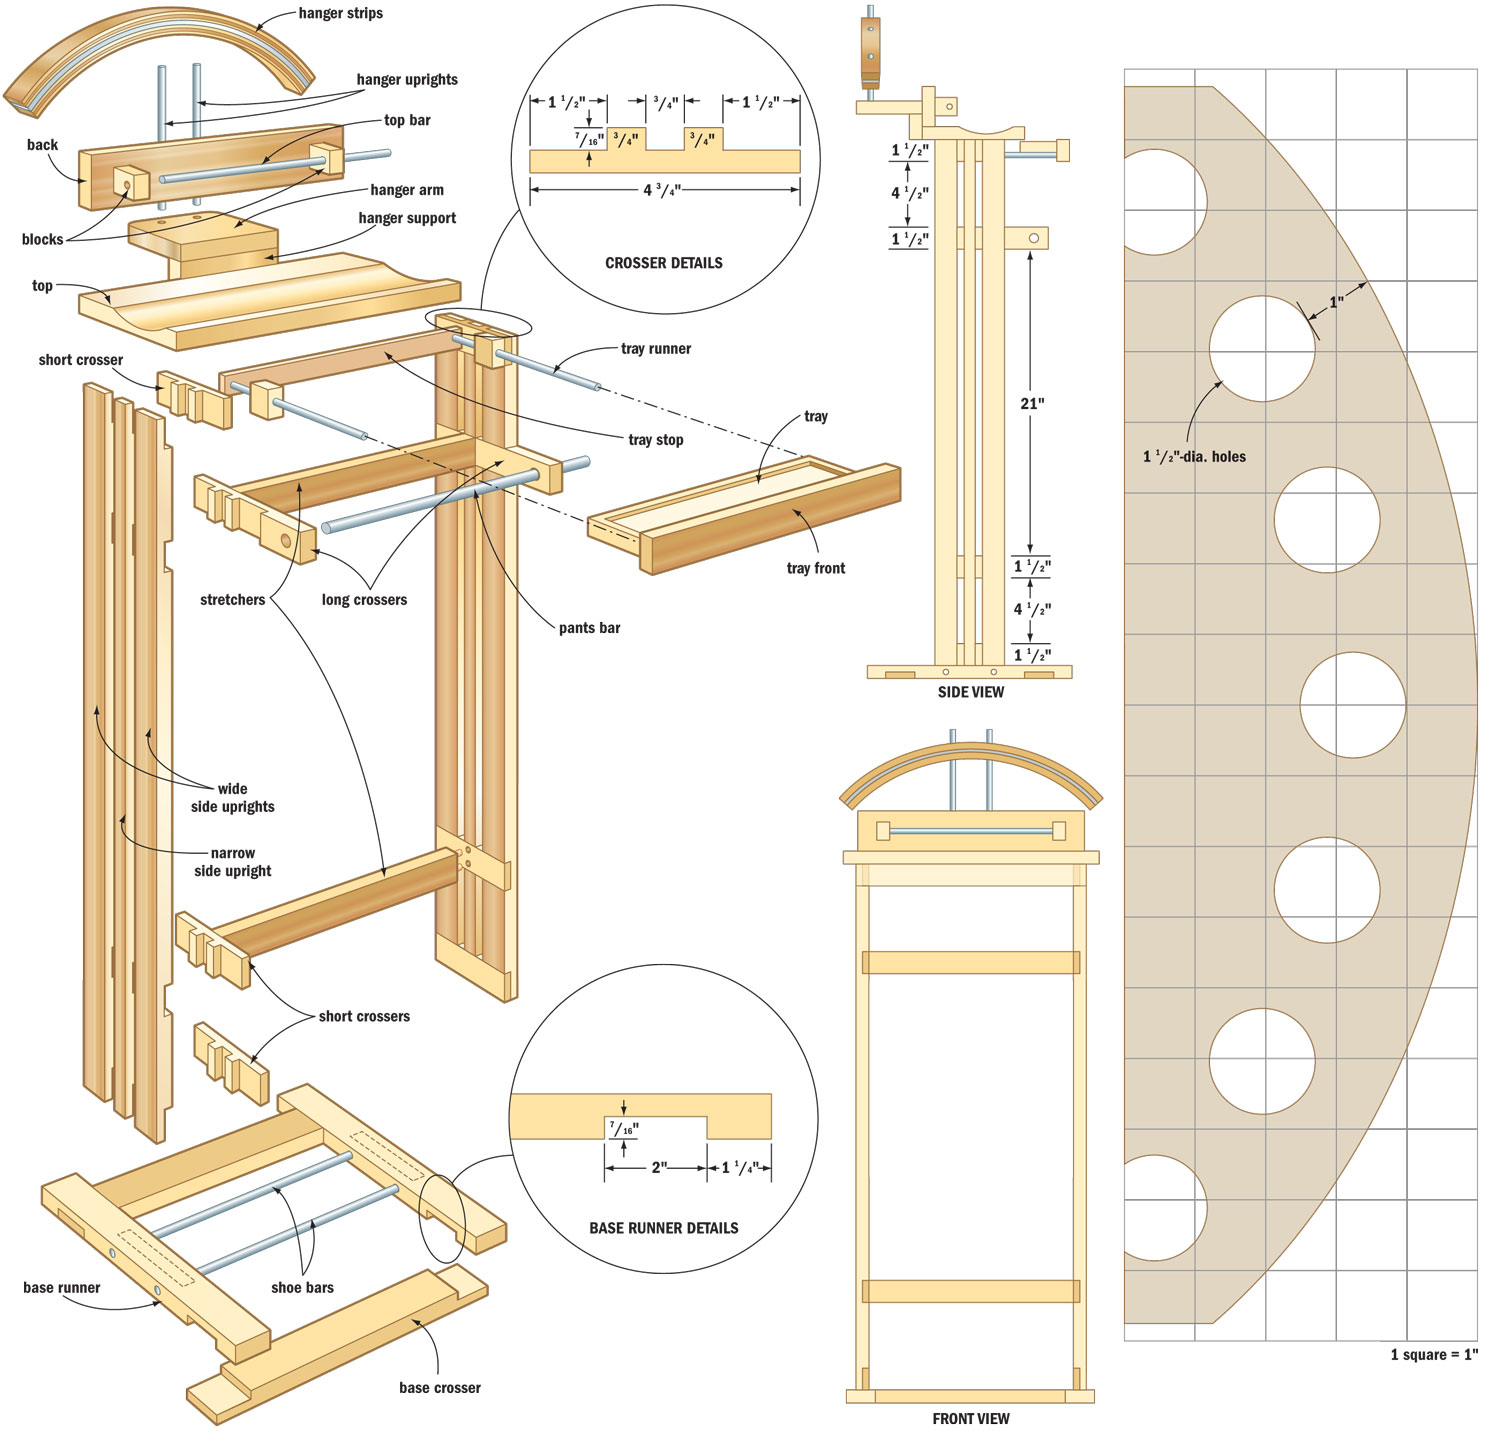 free woodworking plans download | Nortwest Woodworking ...